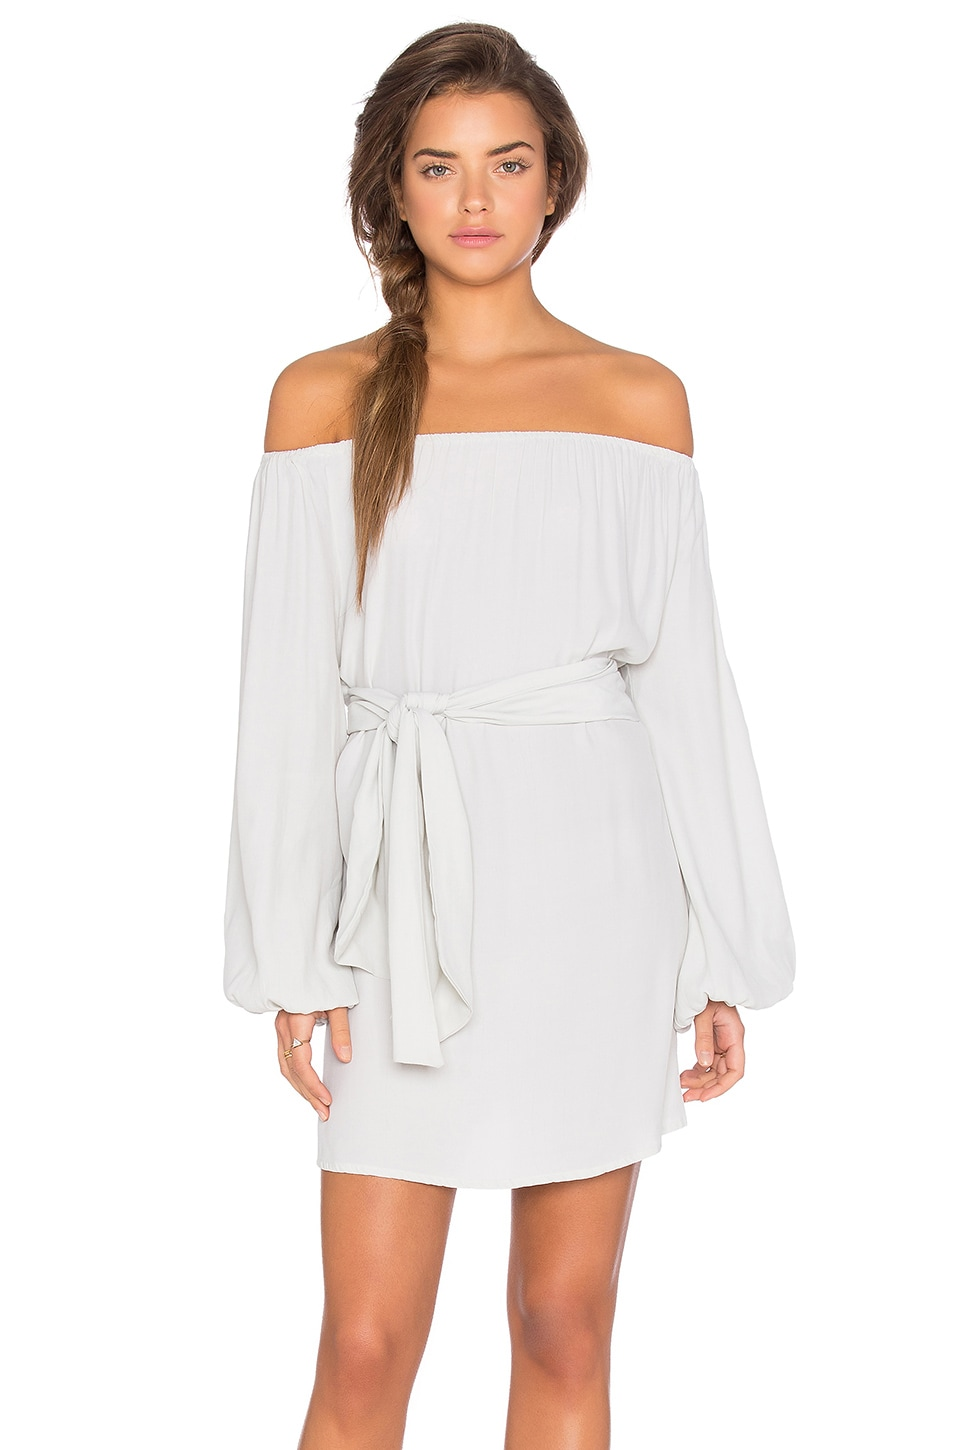 Dash Off Shoulder Tie Dress